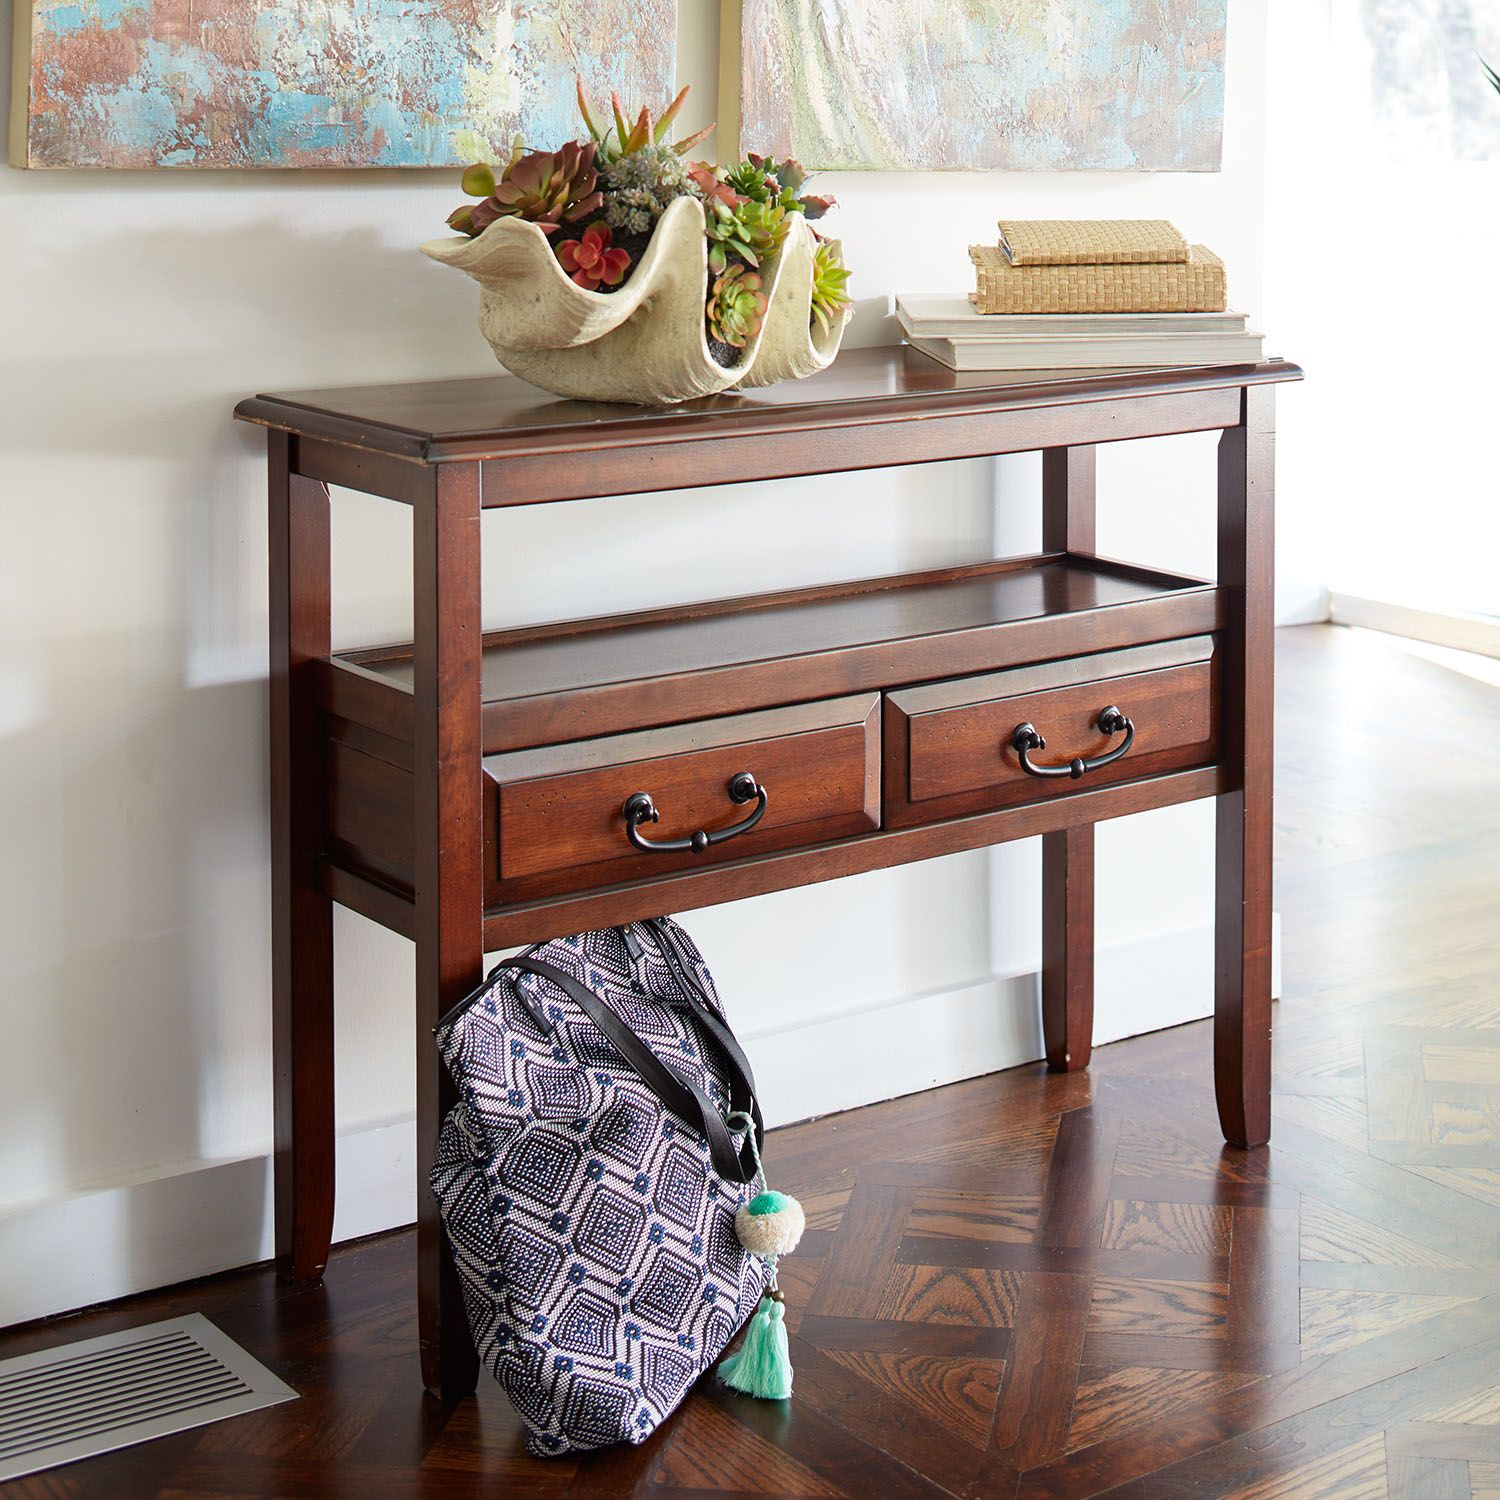 anywhere tuscan brown console table with pull handles pier imports one accent wrought iron patio dining target circular glass lamp shades pottery barn white dishes wicker